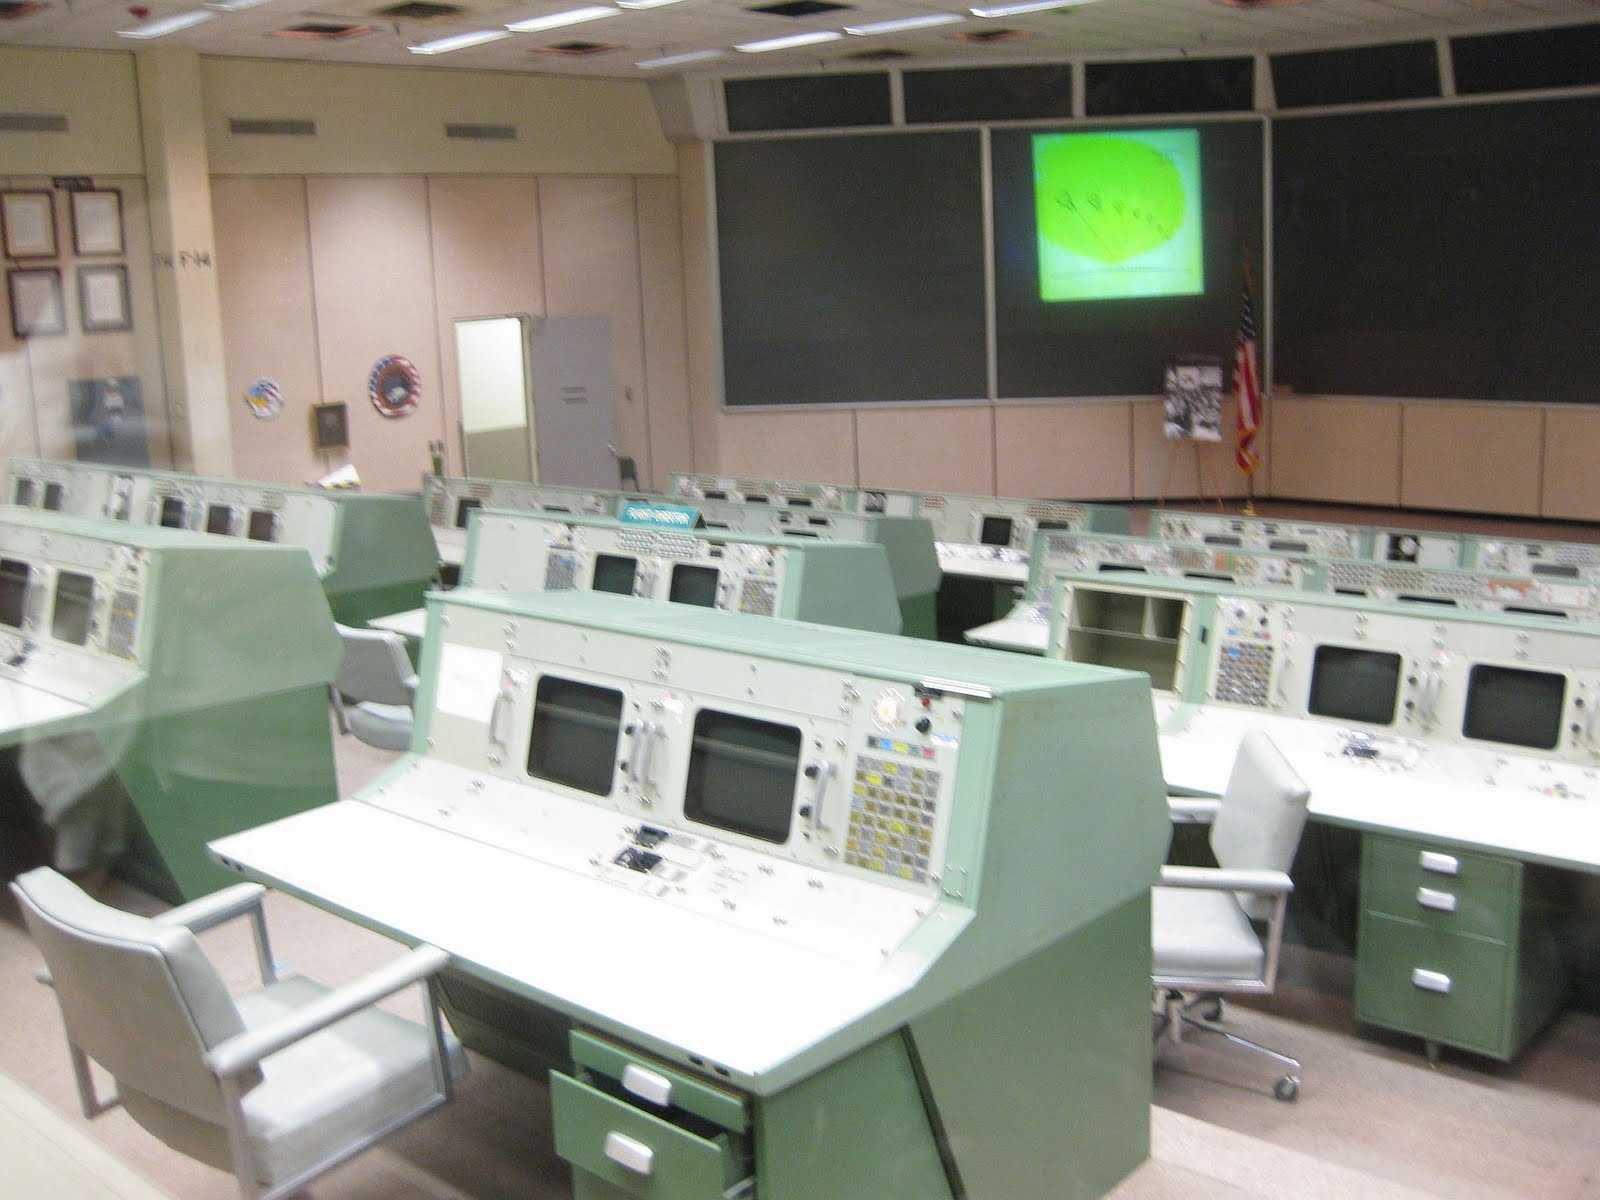 Old NASA Control Room - Pics about space